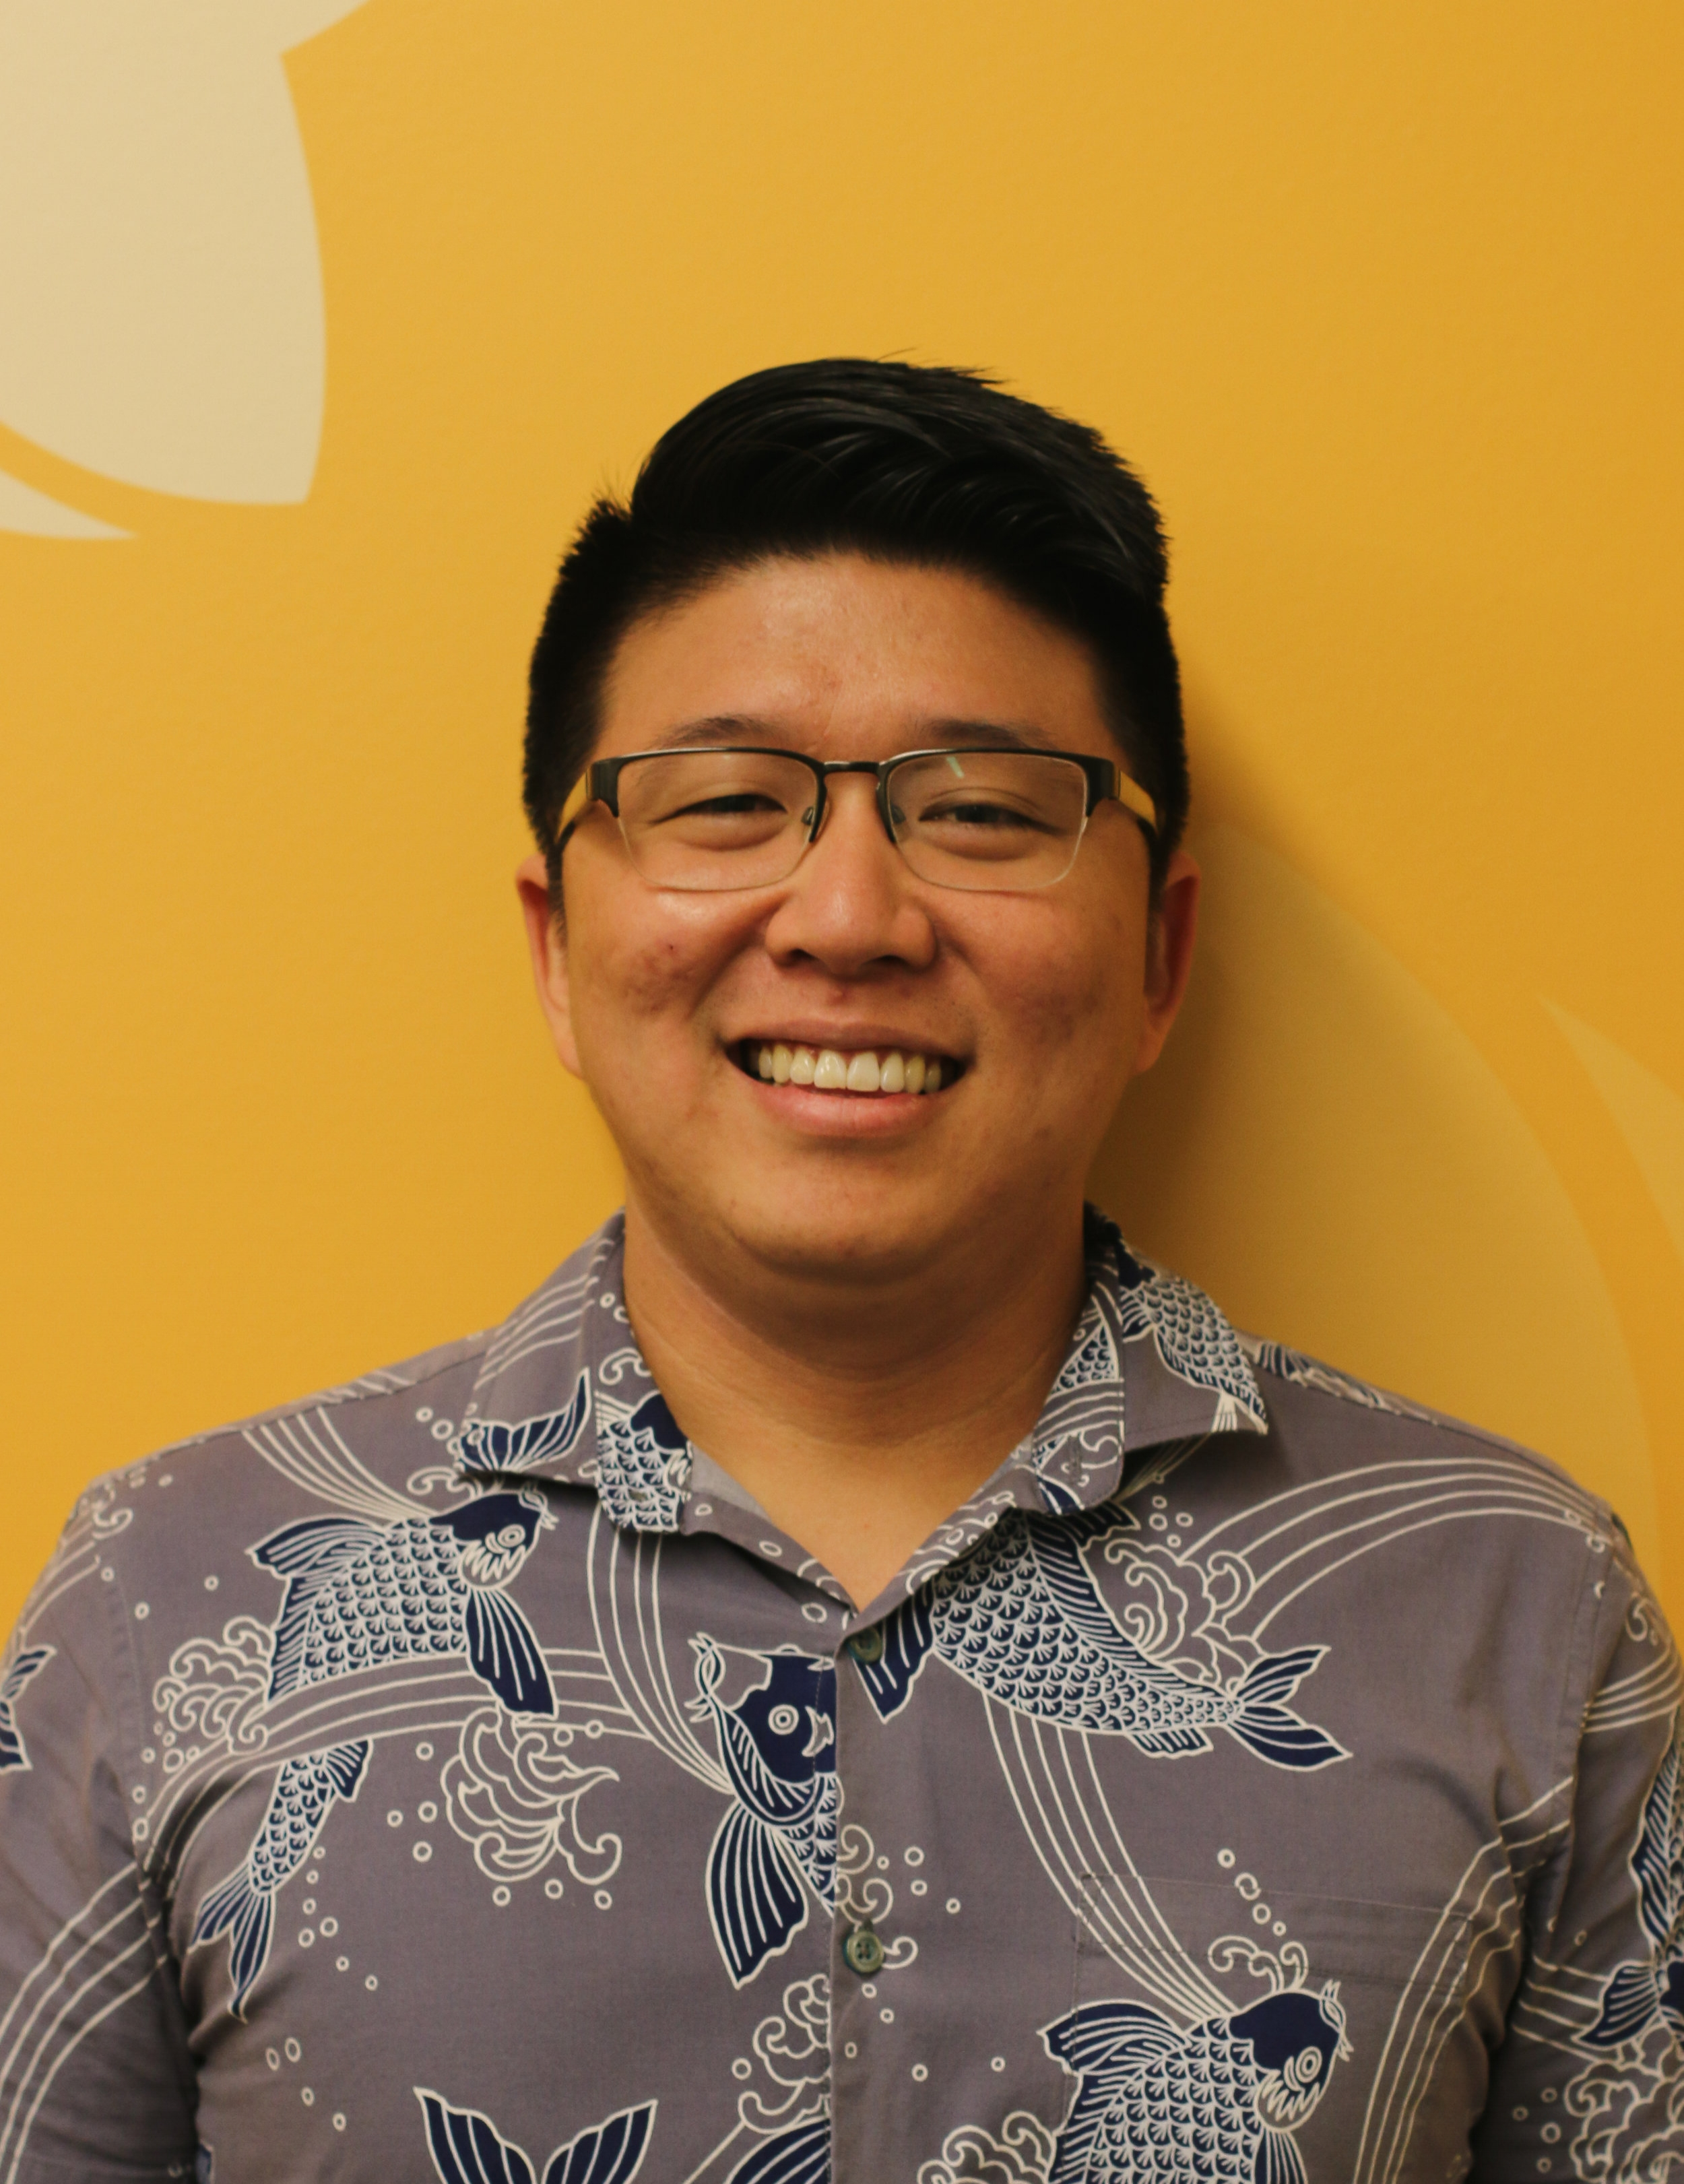 MEMBERSHIP    Scott Imamura   Culinary Coordinator Sullivan Family of Companies    Why did you join Ad 2?   After being away from public service for years, I wanted to find an organization in which I not only serve the community, but learn from successful young marketing/advertising professionals. Luckily, a coworker invited me to a monthly Water Cooler Wednesday and I instantly felt like I was apart of a special community.